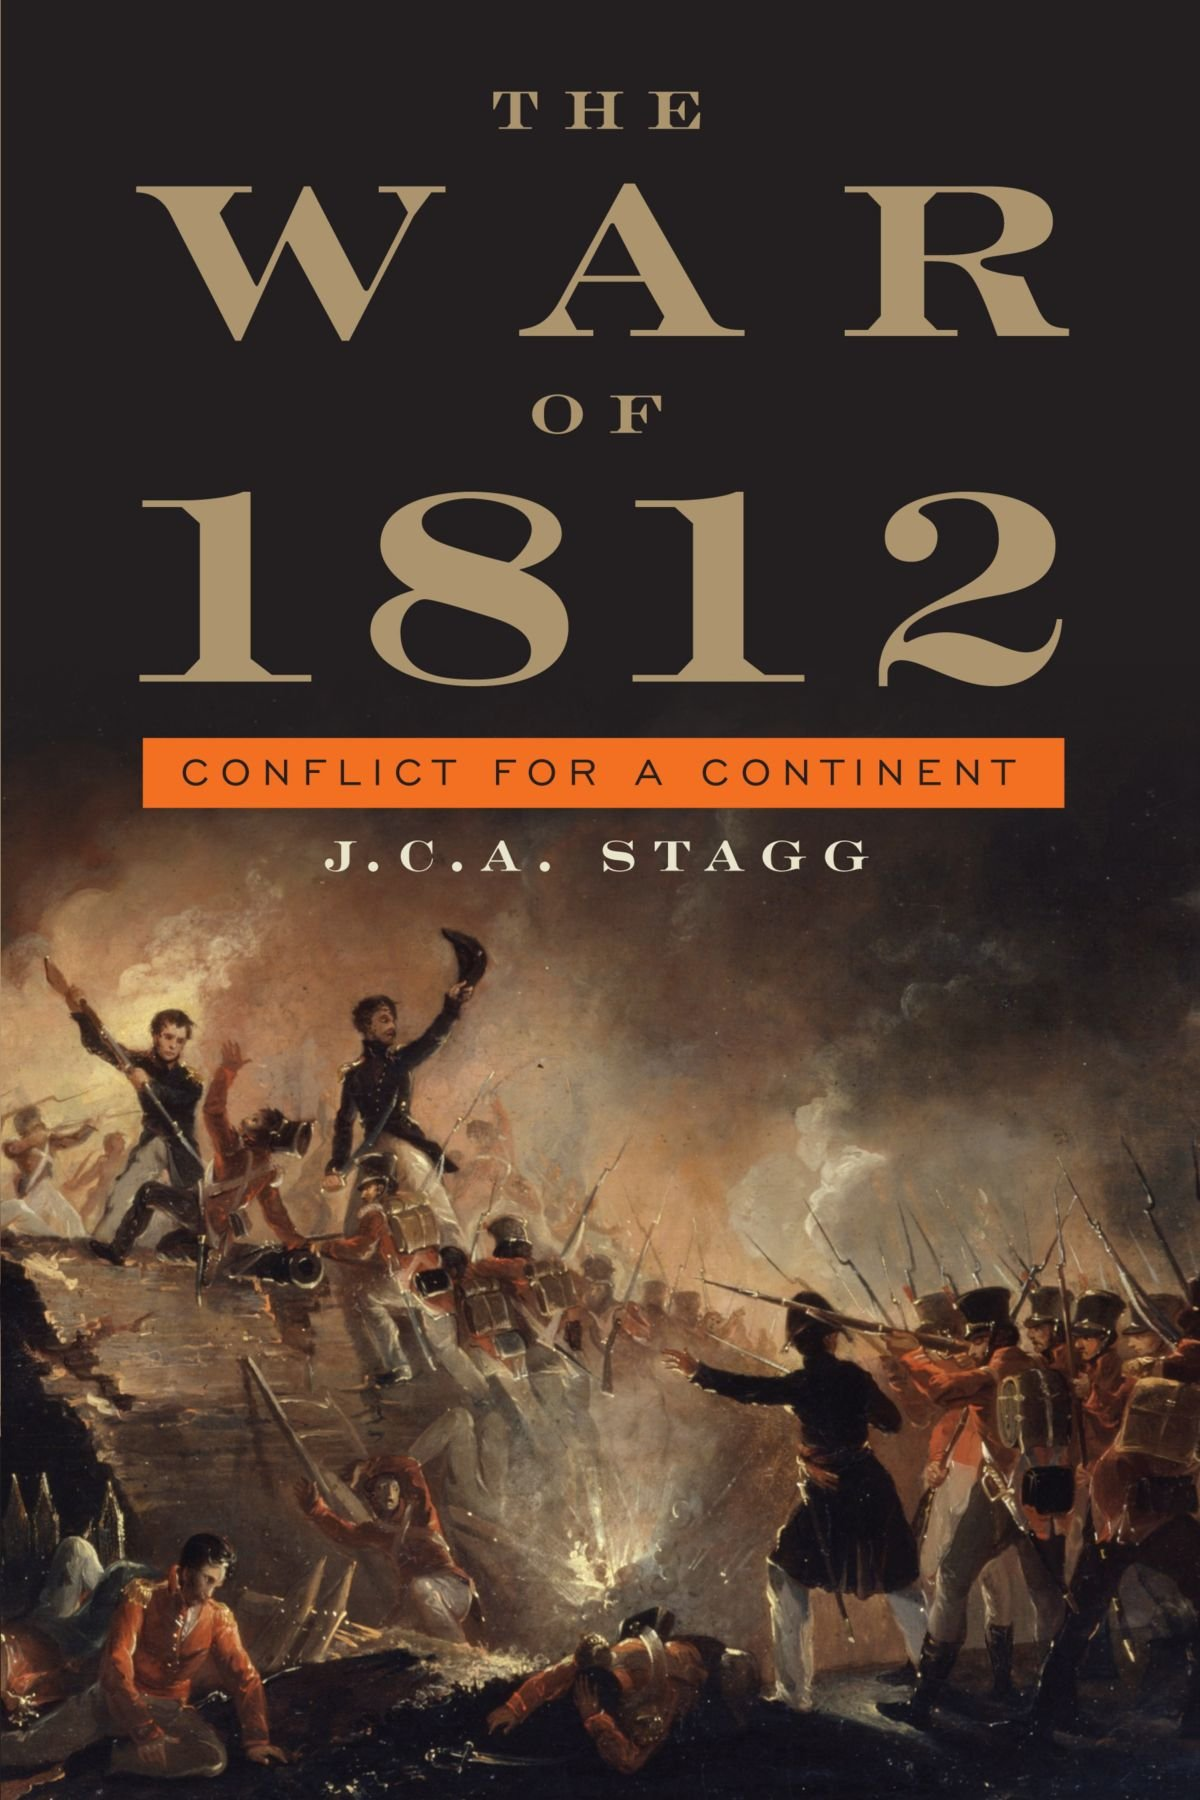 the war of 1812 conflict for a continent cambridge essential the war of 1812 conflict for a continent cambridge essential histories j c a stagg 9780521726863 com books